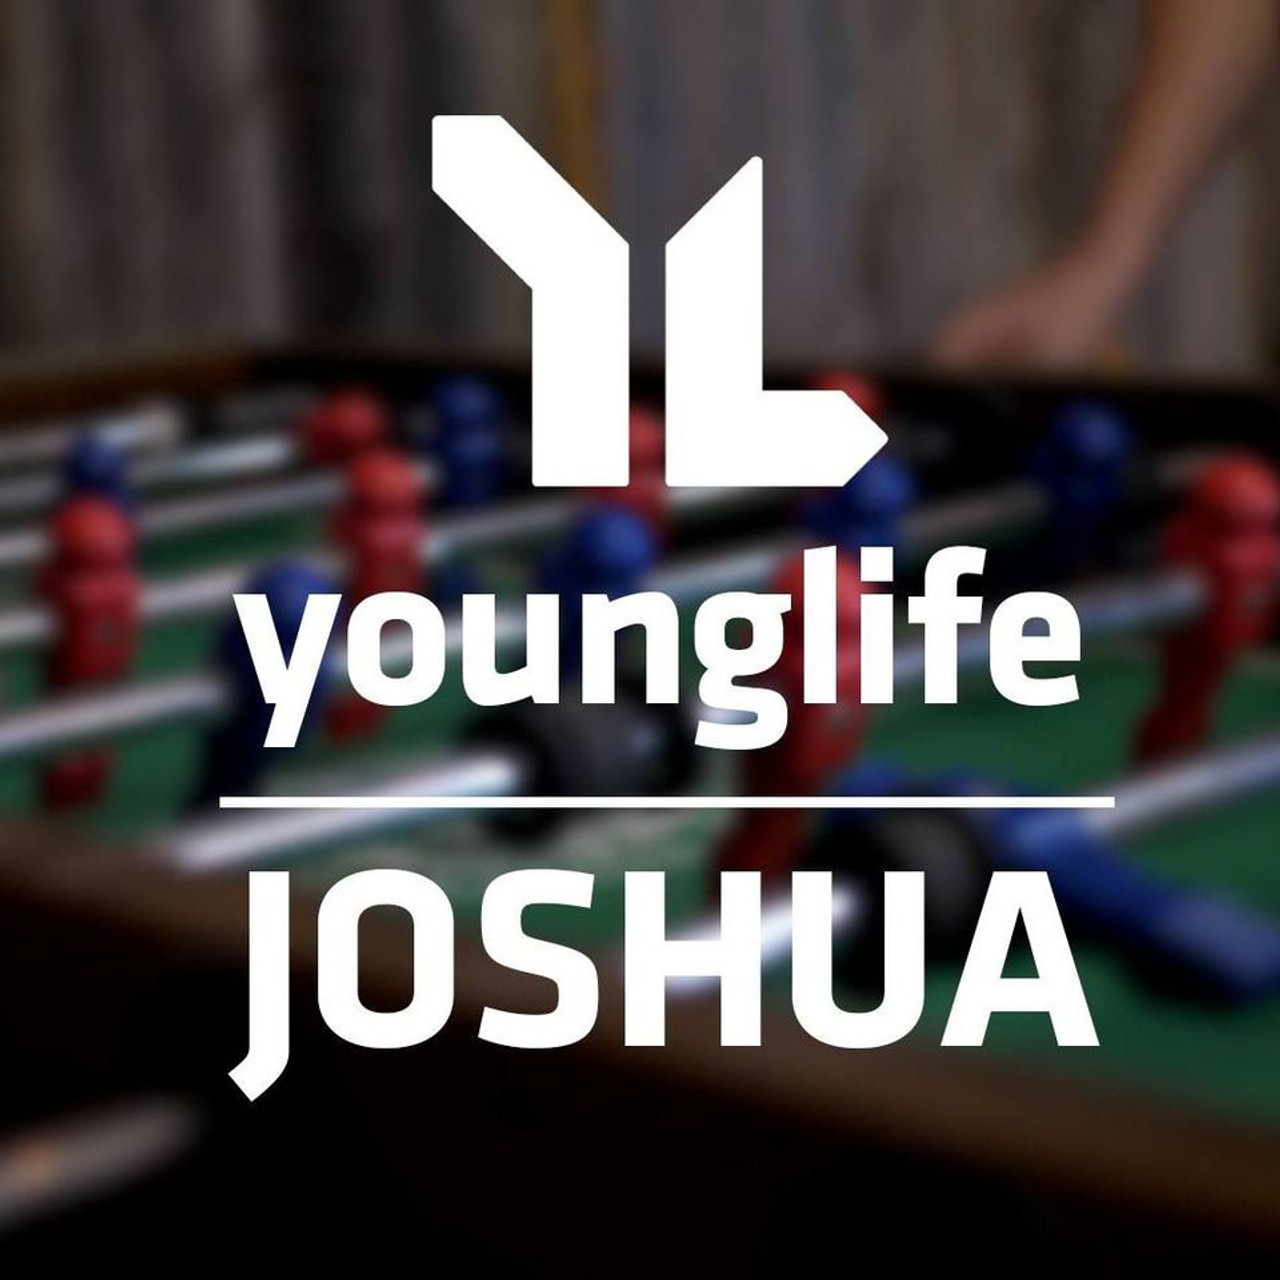 Joshua Young Life Clay Shoot May 1st